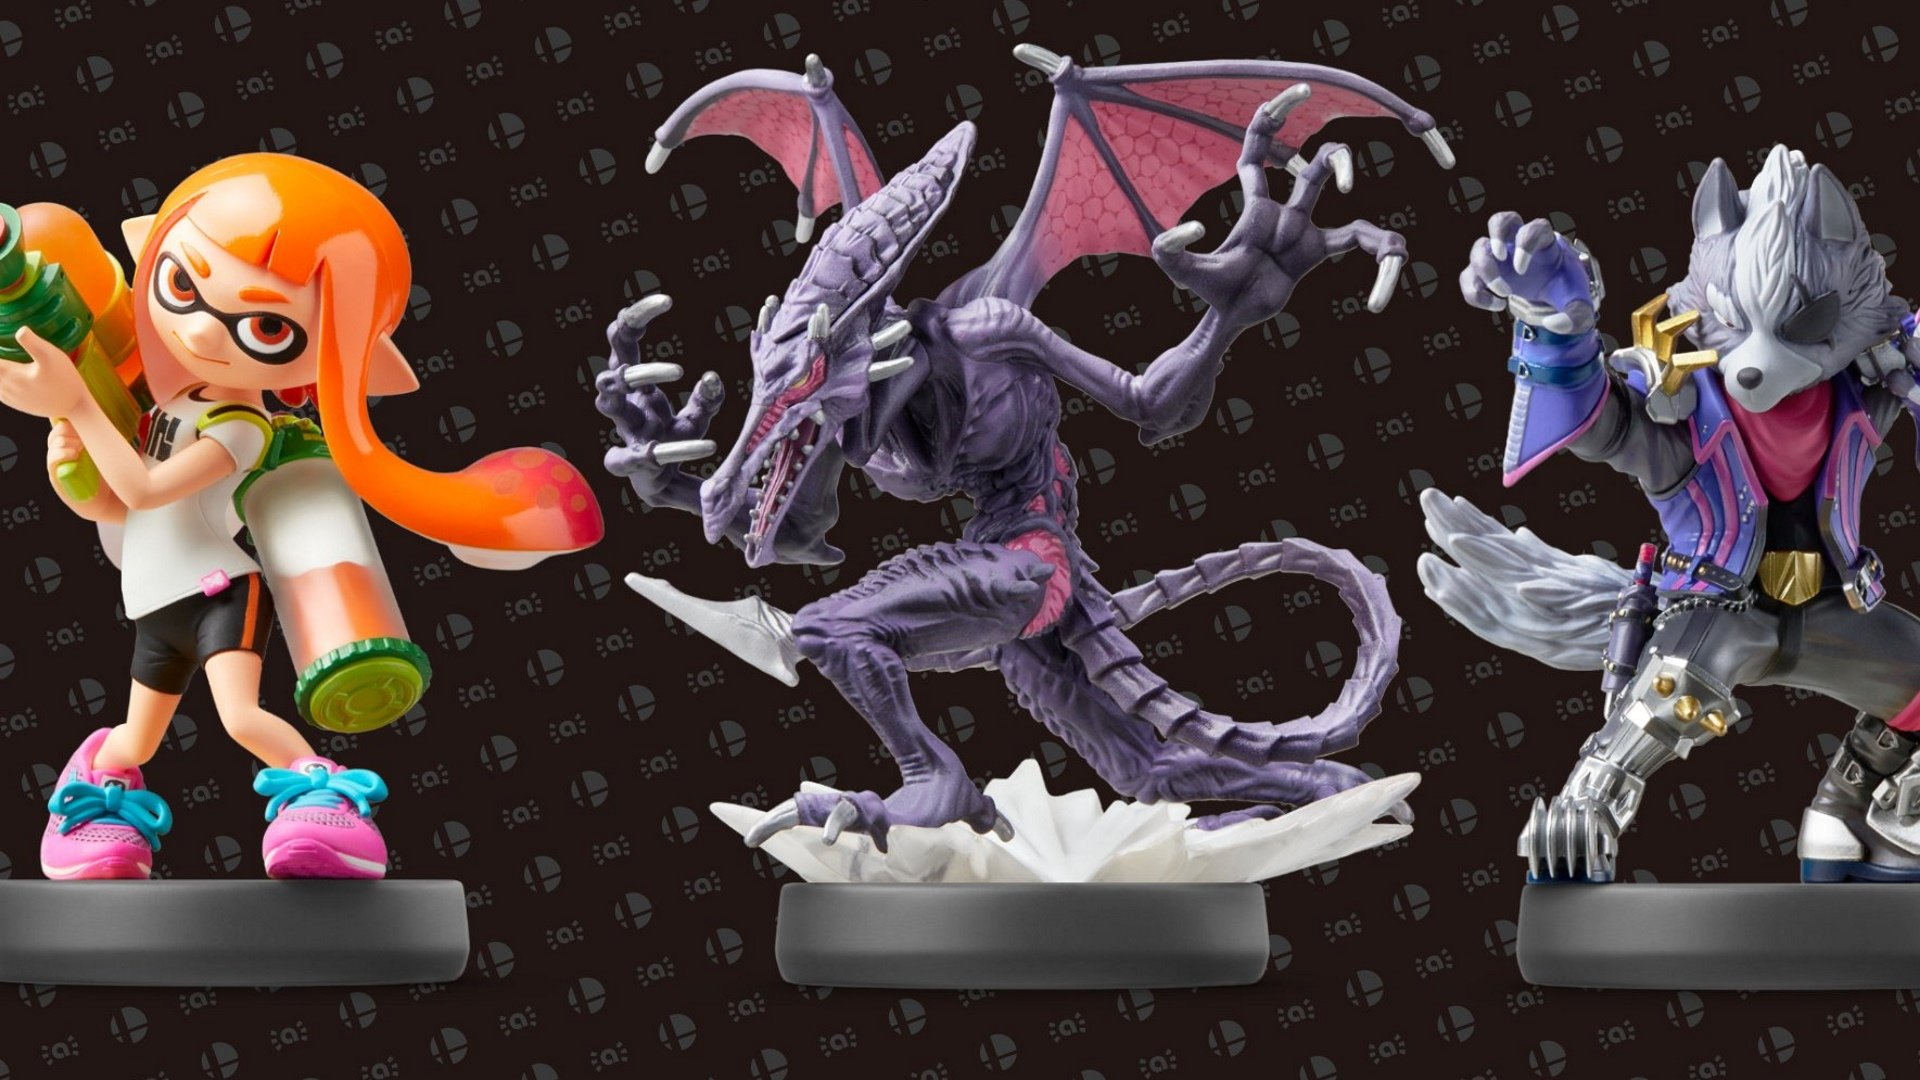 Nintendo dévoile Inkling, Ridley et Wolf Amiibos